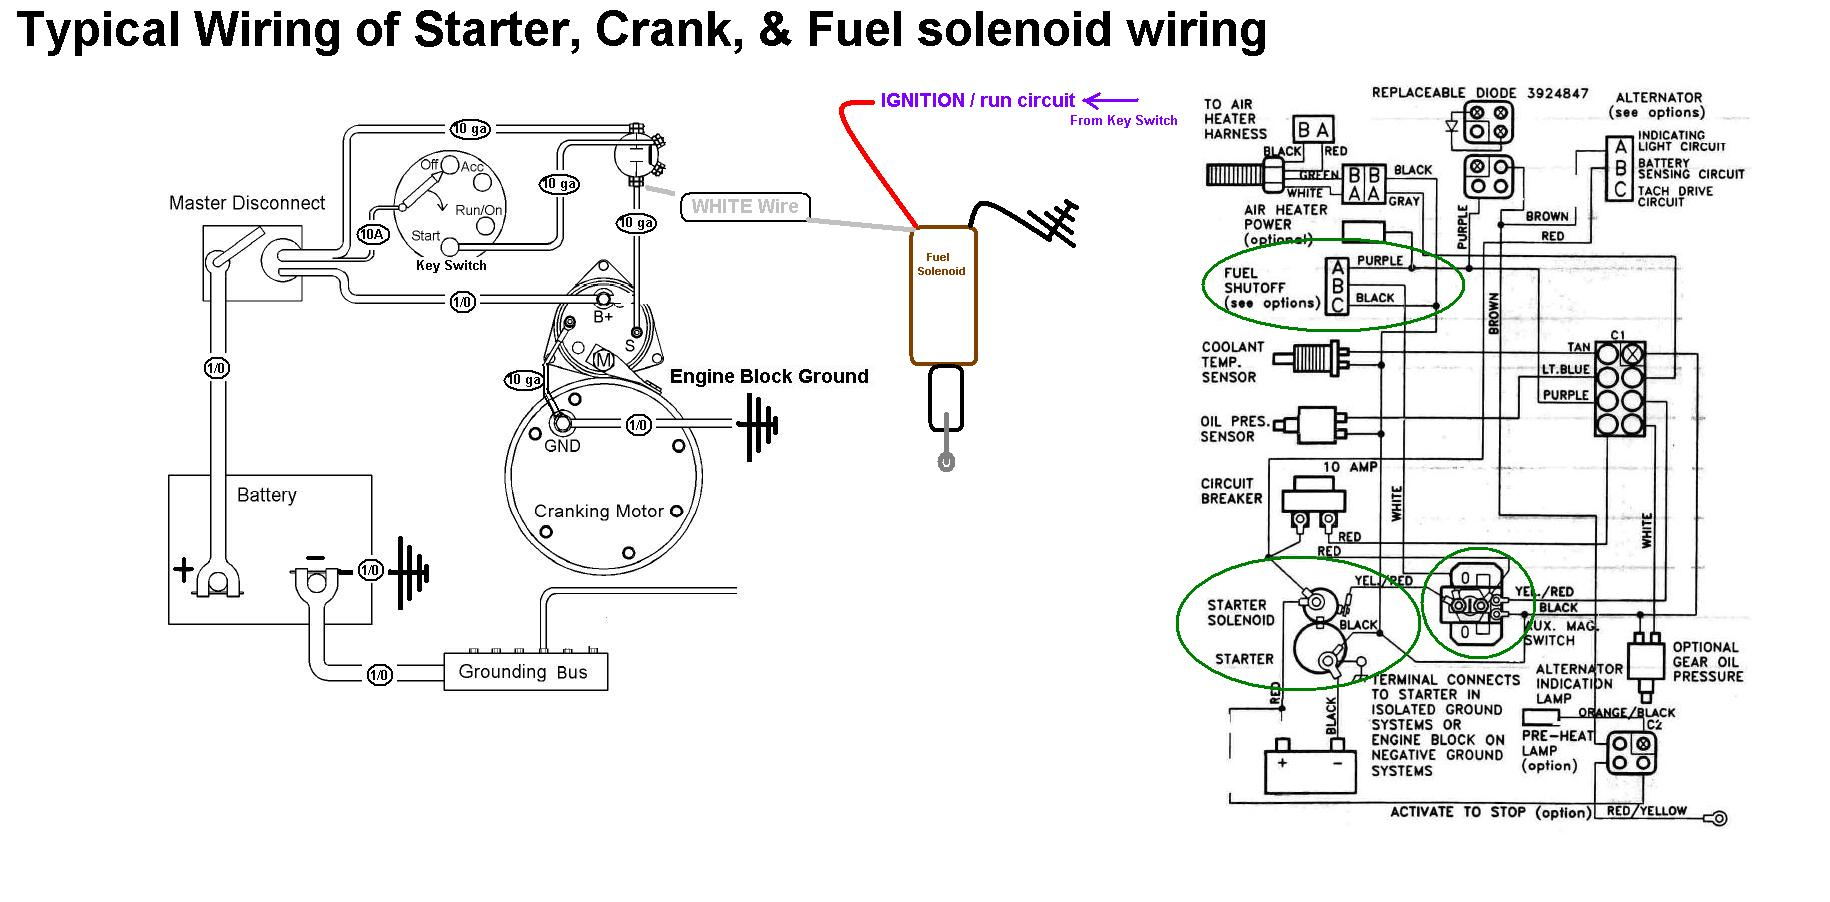 starter relay wiring solidfonts 1988 mustang you connect a starter relay solenoid ground resistor